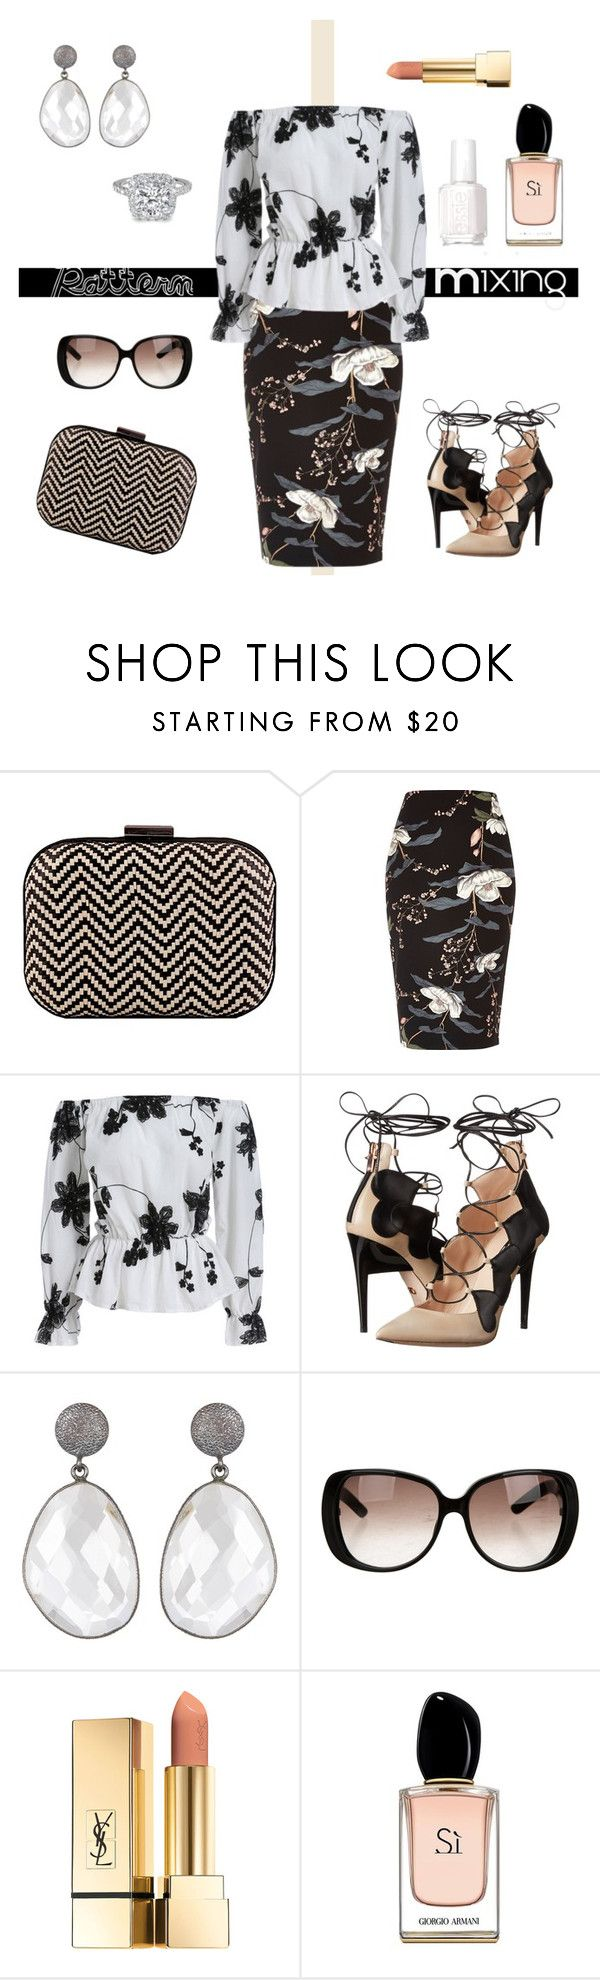 """Rules are Made to be Broken!"" by krusie ❤ liked on Polyvore featuring River Island, Ruthie Davis, Gucci, Armani Beauty and Essie"